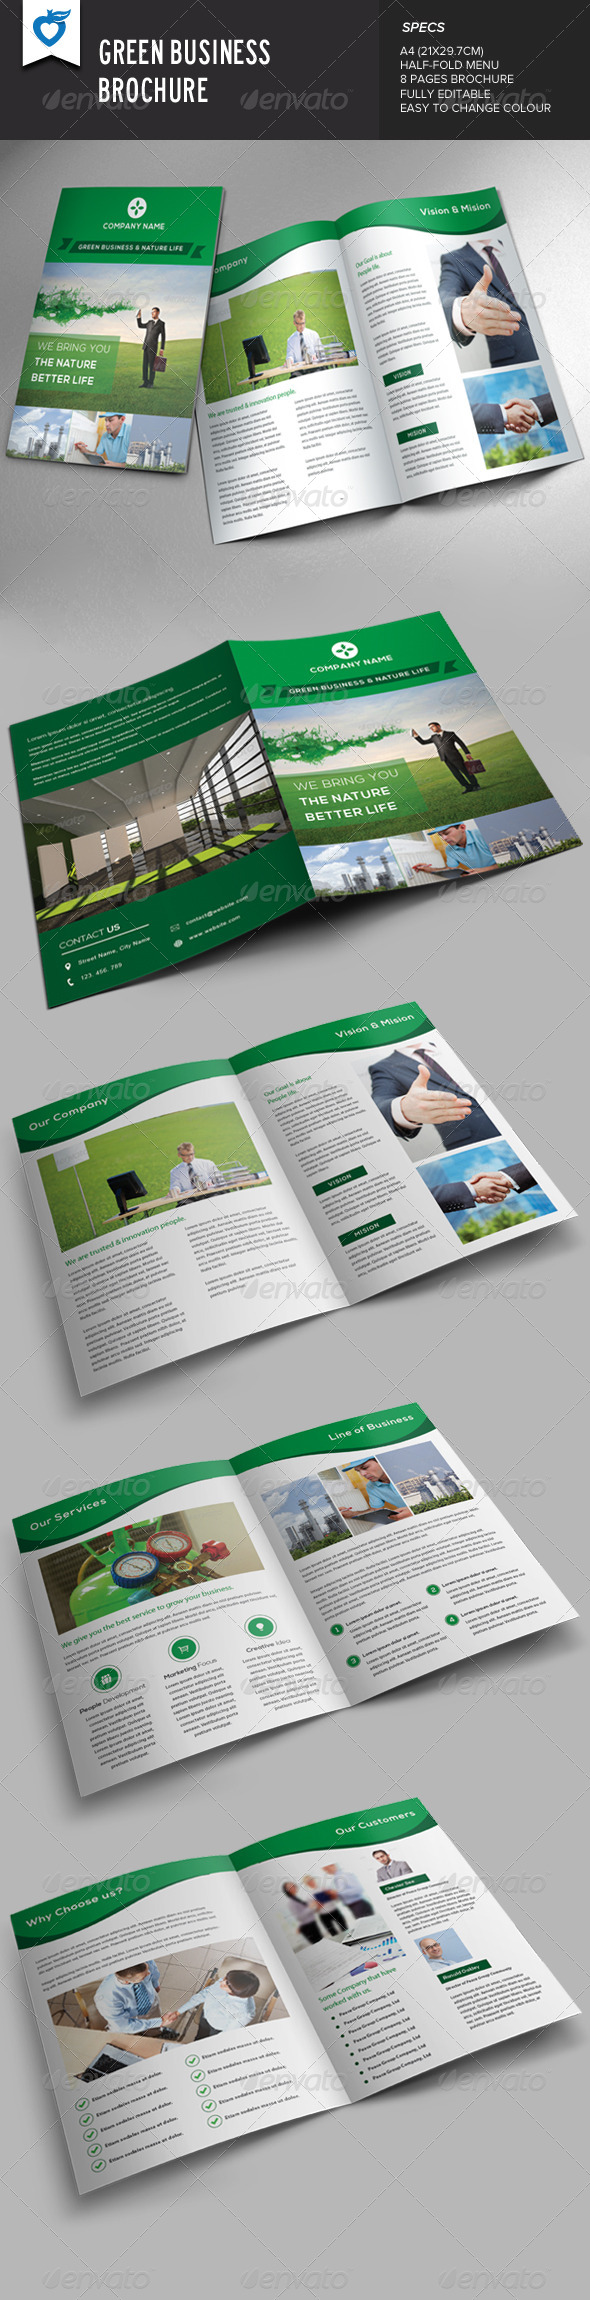 GraphicRiver Green Business Brochure 8495704